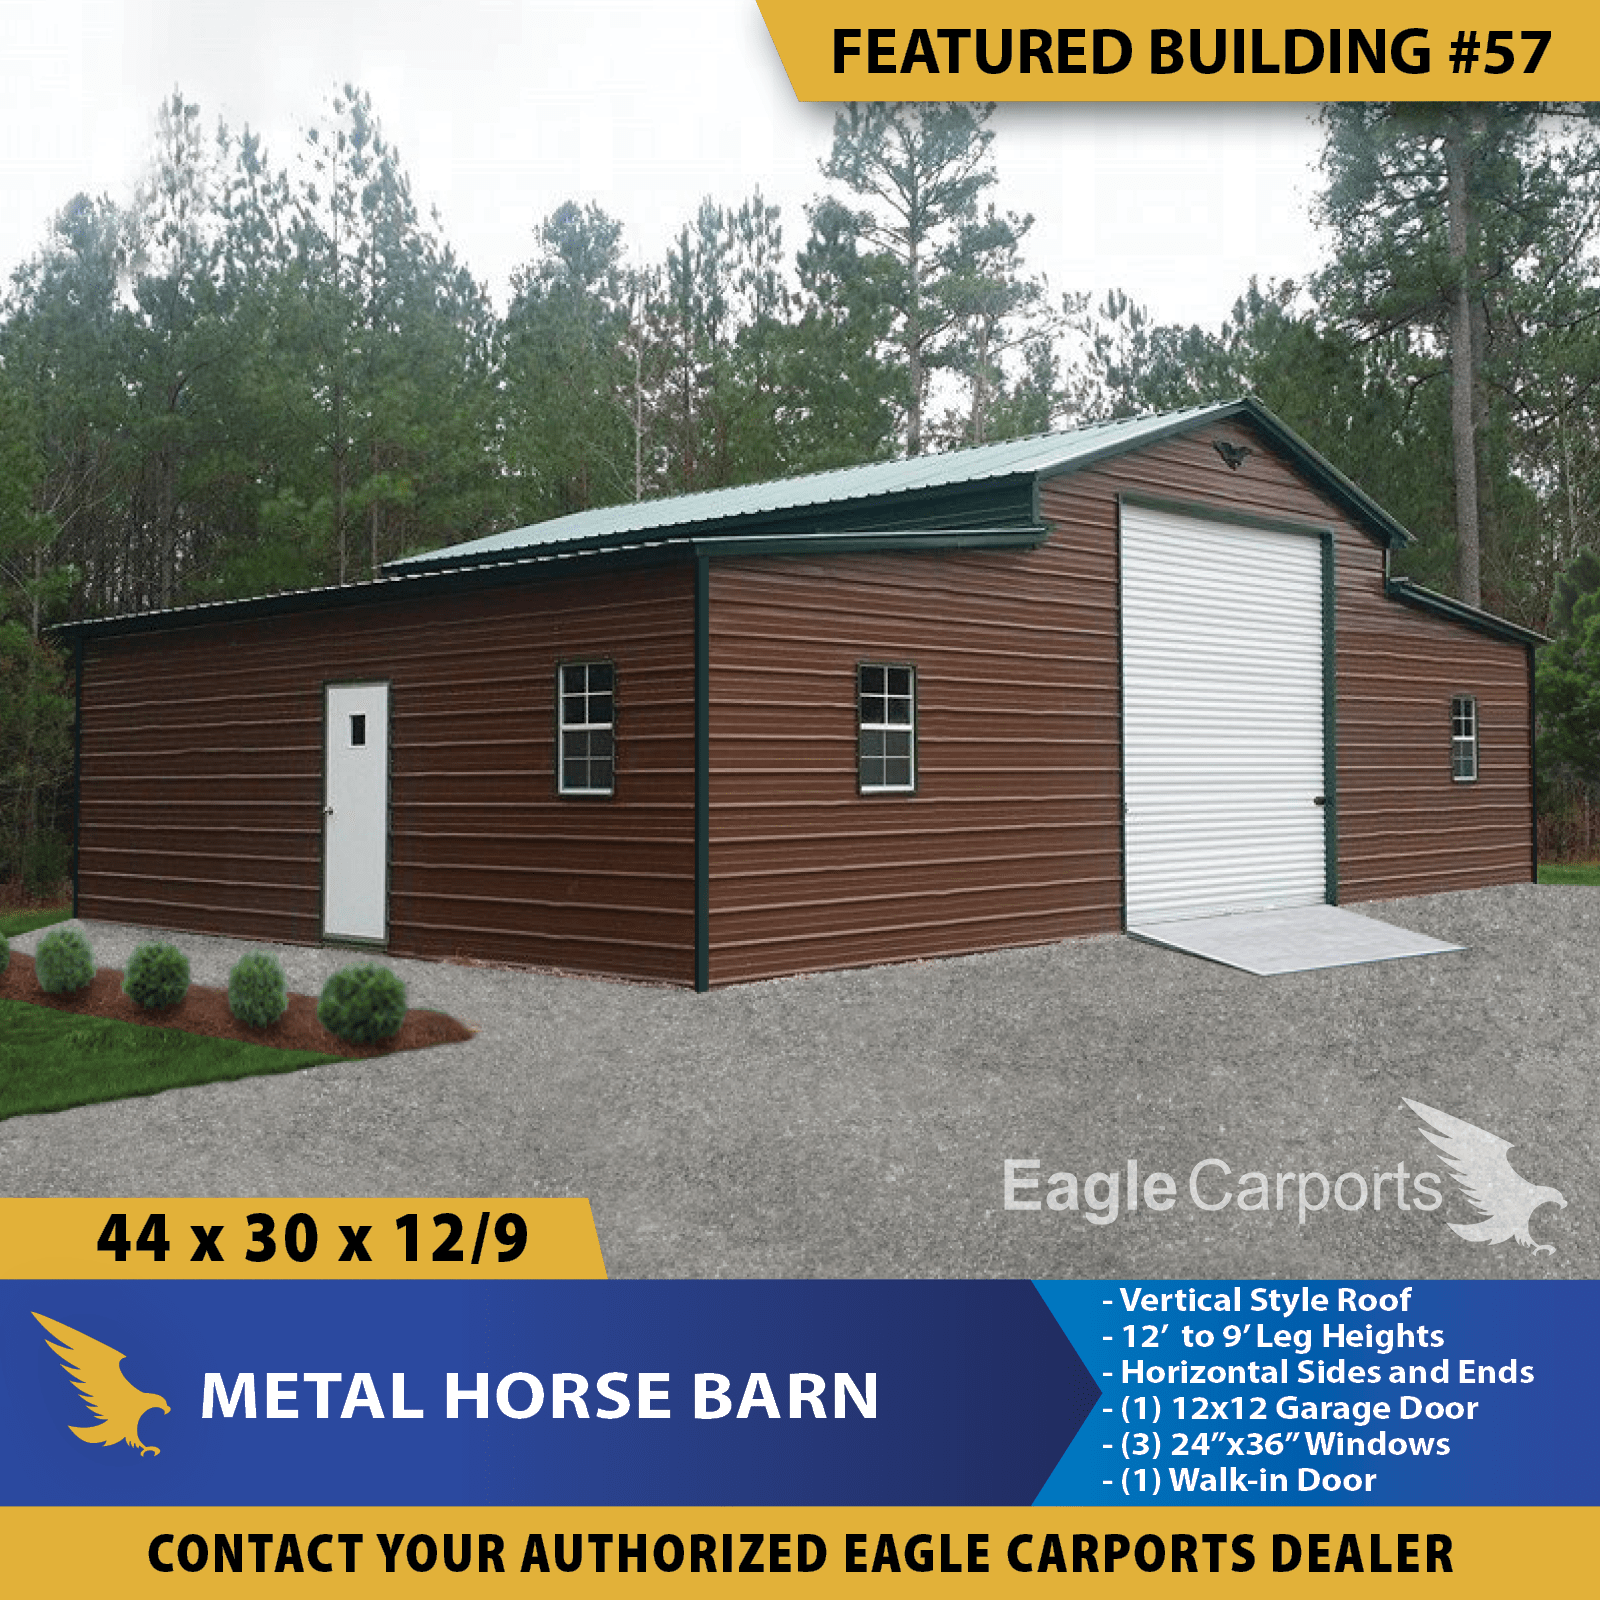 44x30x12 9 Metal Horse Barn Has A 12 Center Section Leg Height With 9 Side Leg Height 1 12x12 Garage In 2020 Portable Buildings Metal Horse Barns Metal Buildings